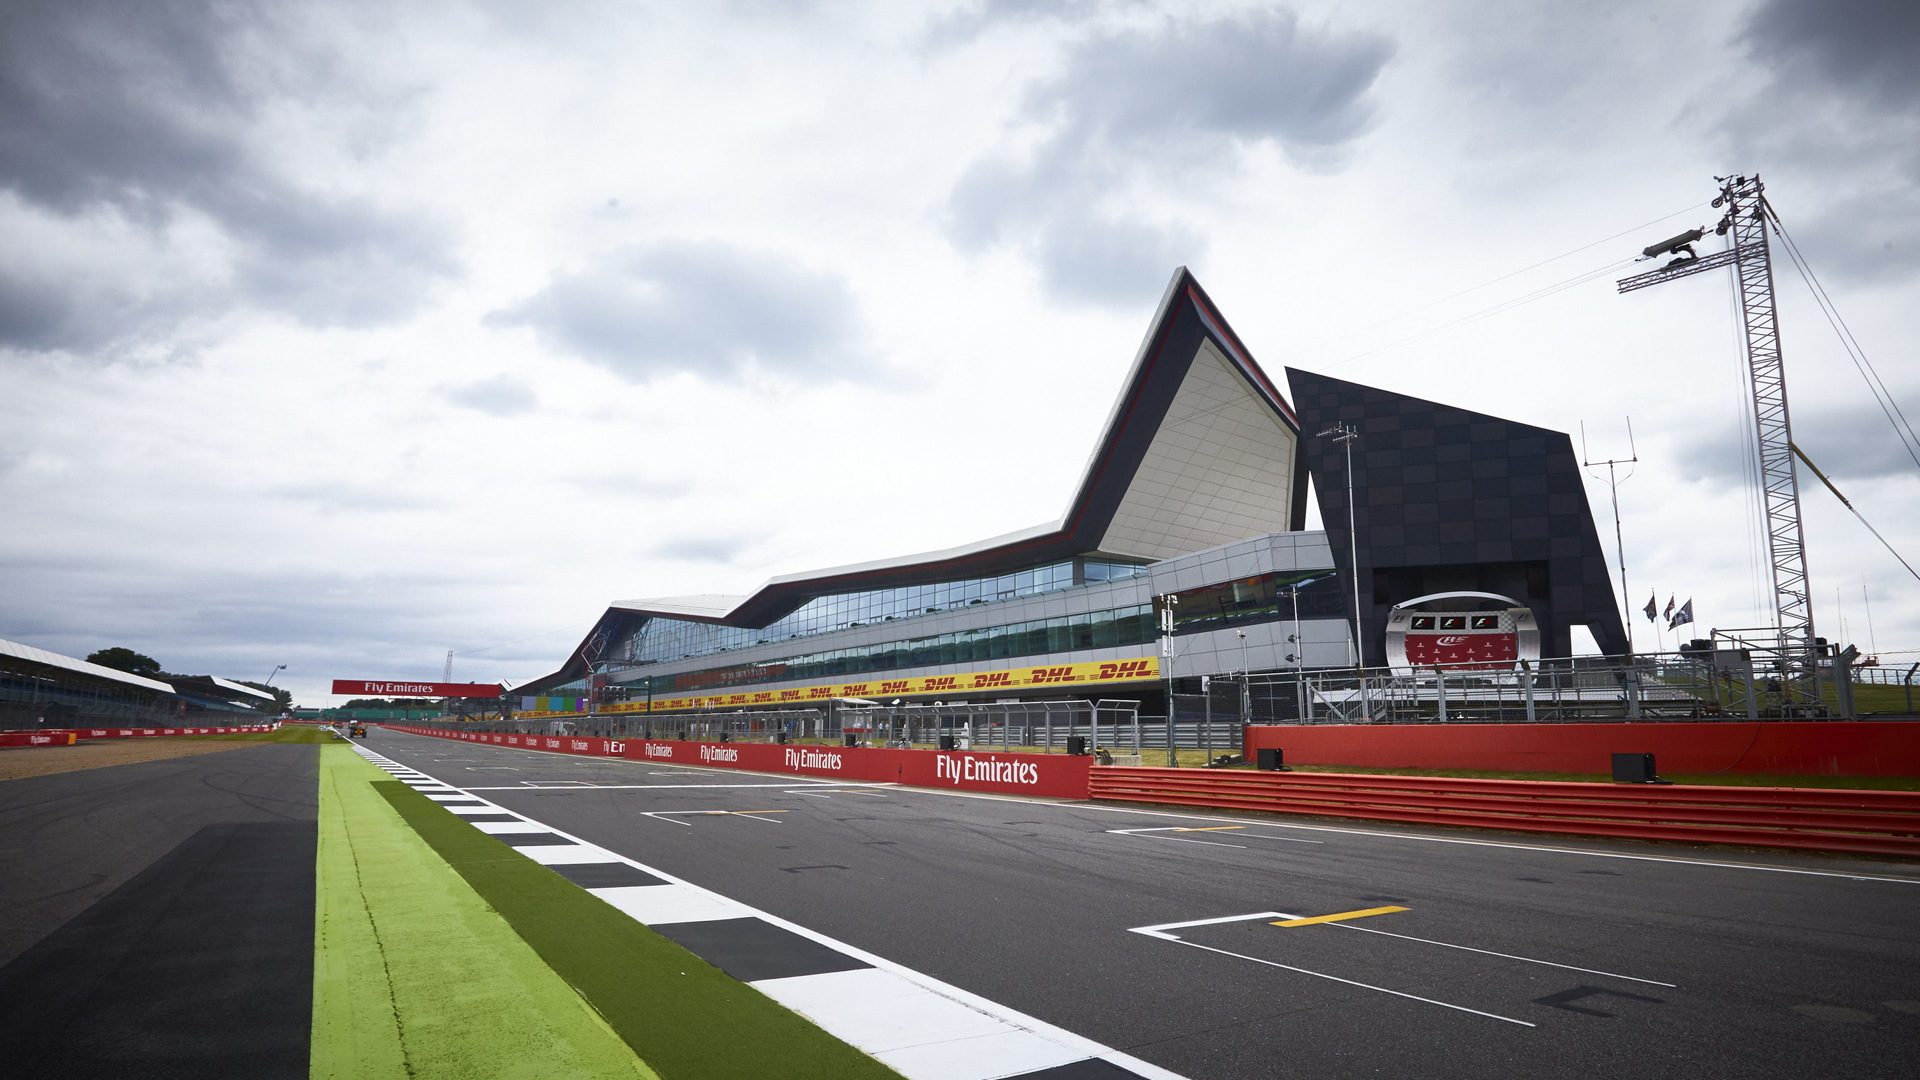 Silverstone Circuit, home of the Formula 1 British Grand Prix